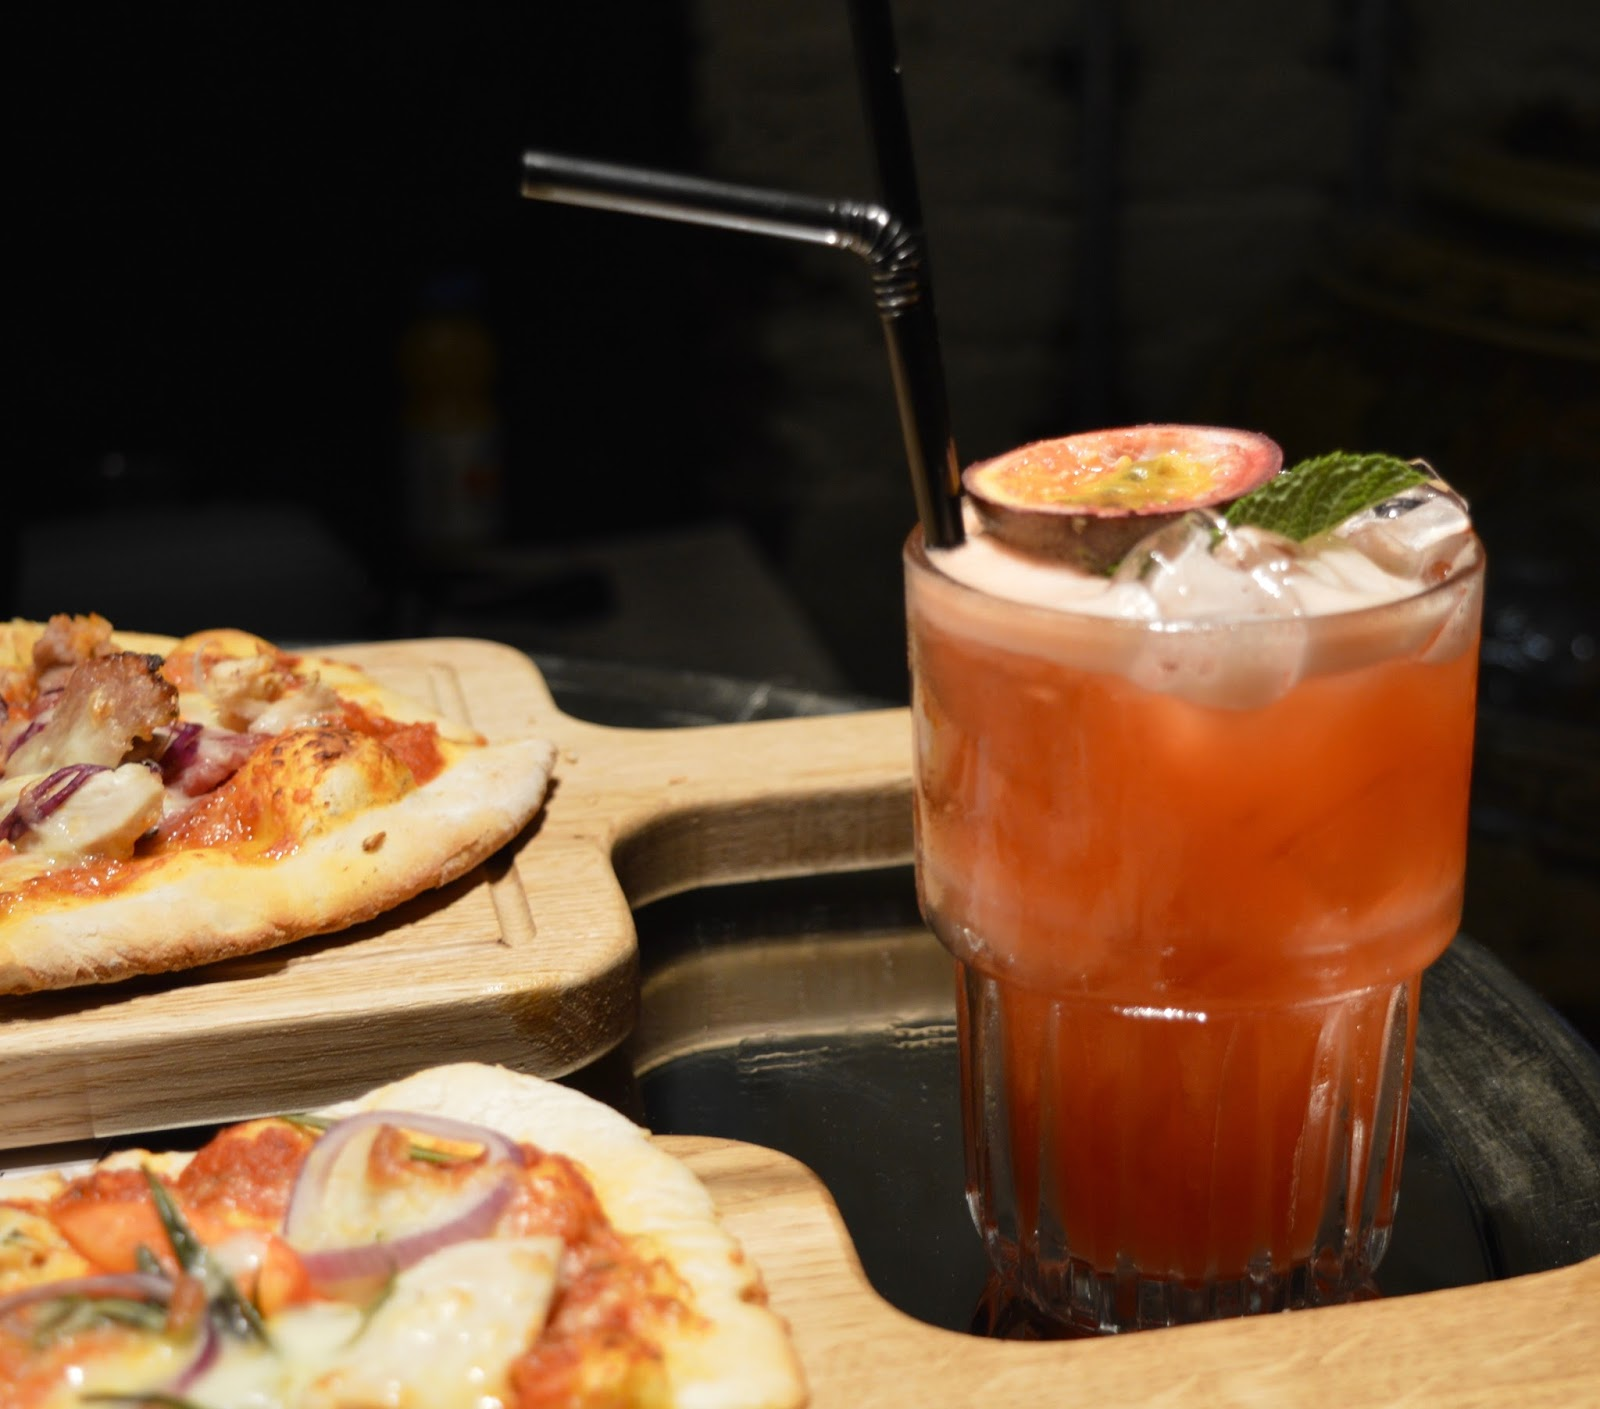 Yolo Townhouse Newcastle | A new venue to try for your next girl's night out - pizzas